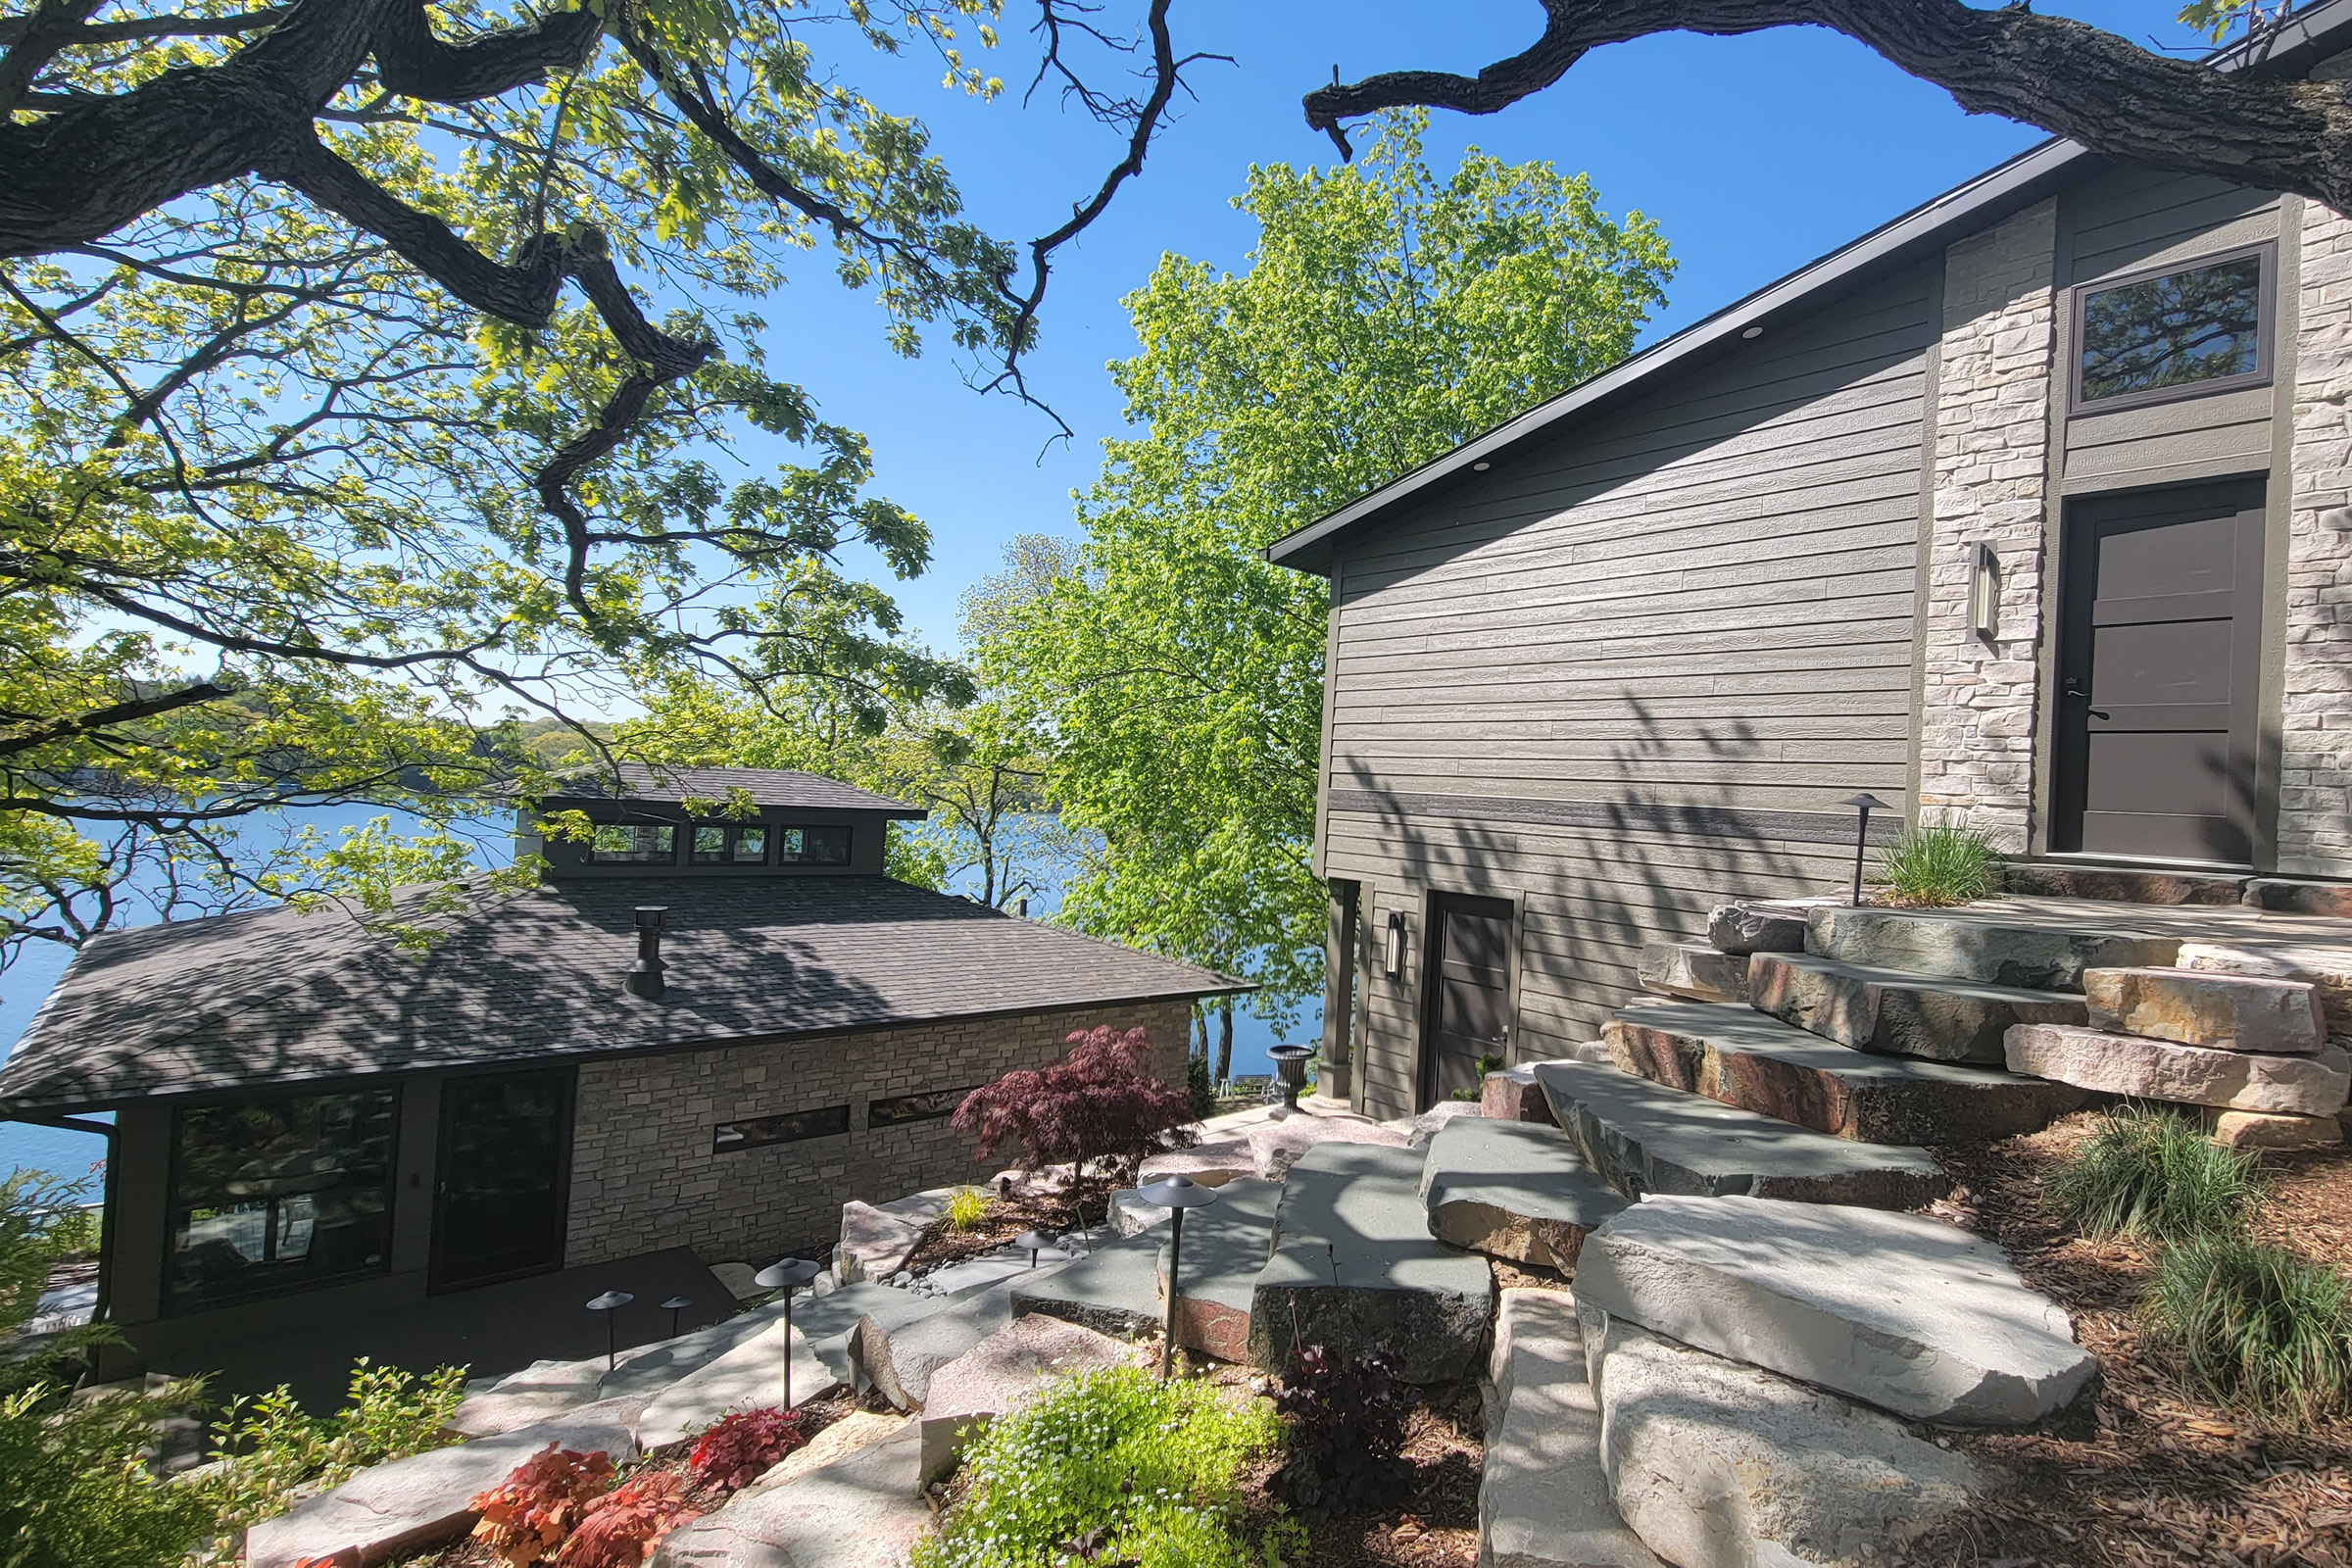 SOLD! 3BR, 2.5BA Whitewater Lakefront Home w Panoramic Views | N7580 Ridge Rd, Whitewater WI